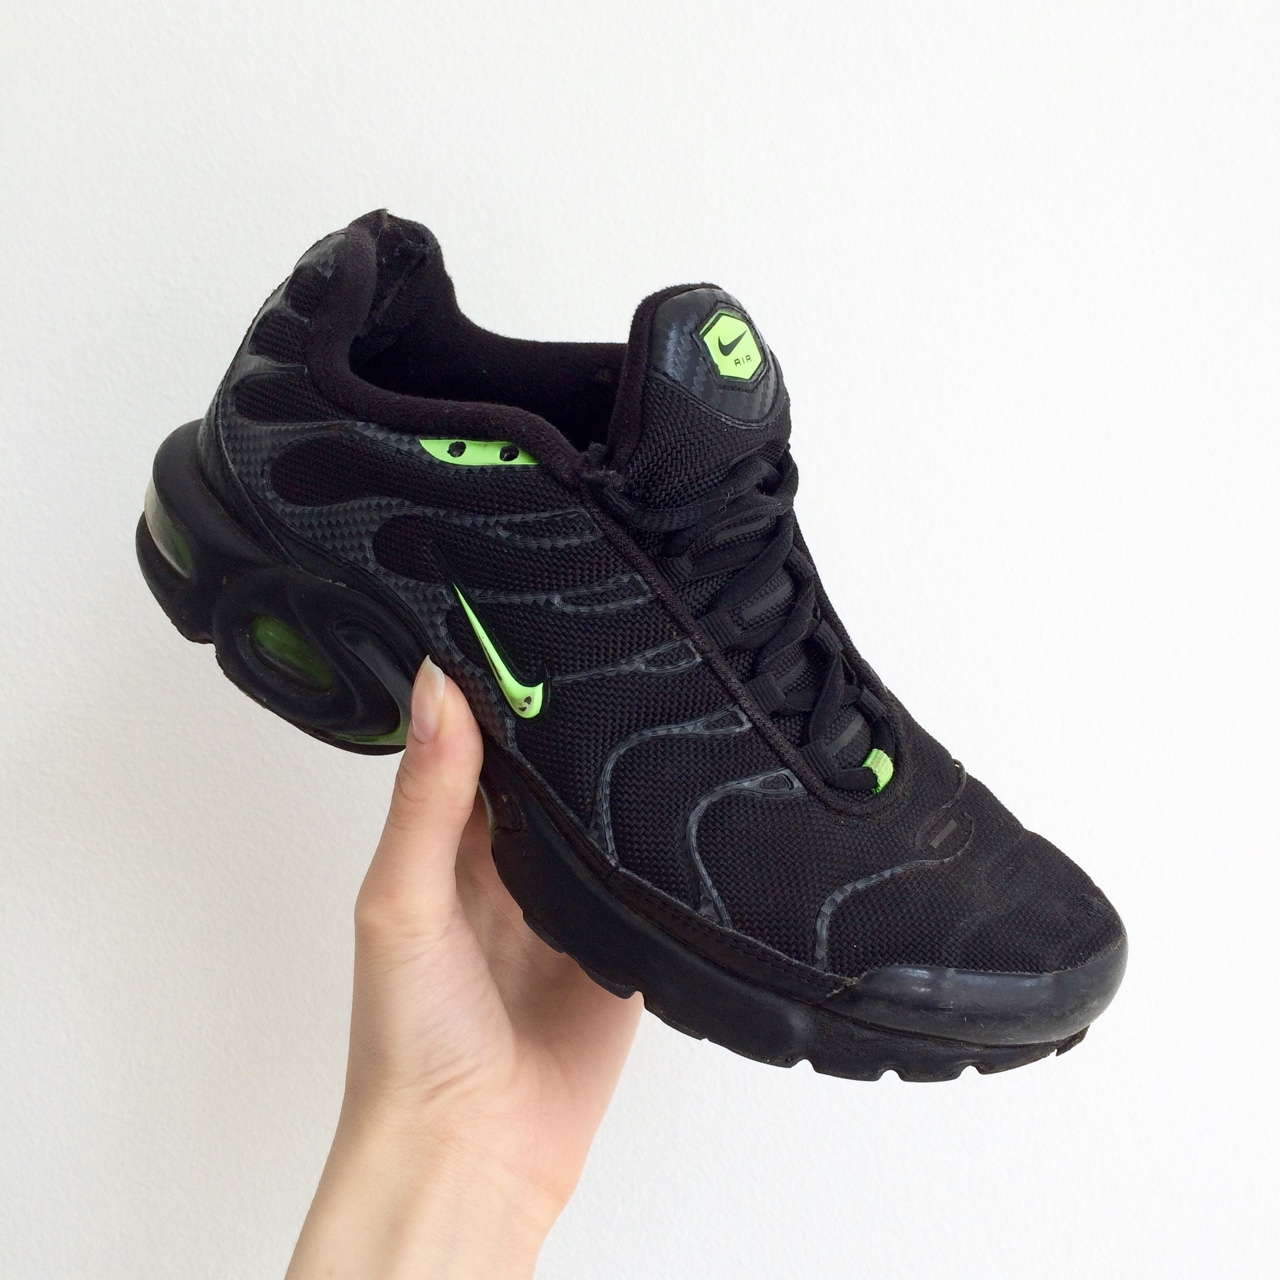 size 40 2f647 beaa5 Nike Air Max TN TNs Tuned 1 black and green... - Depop